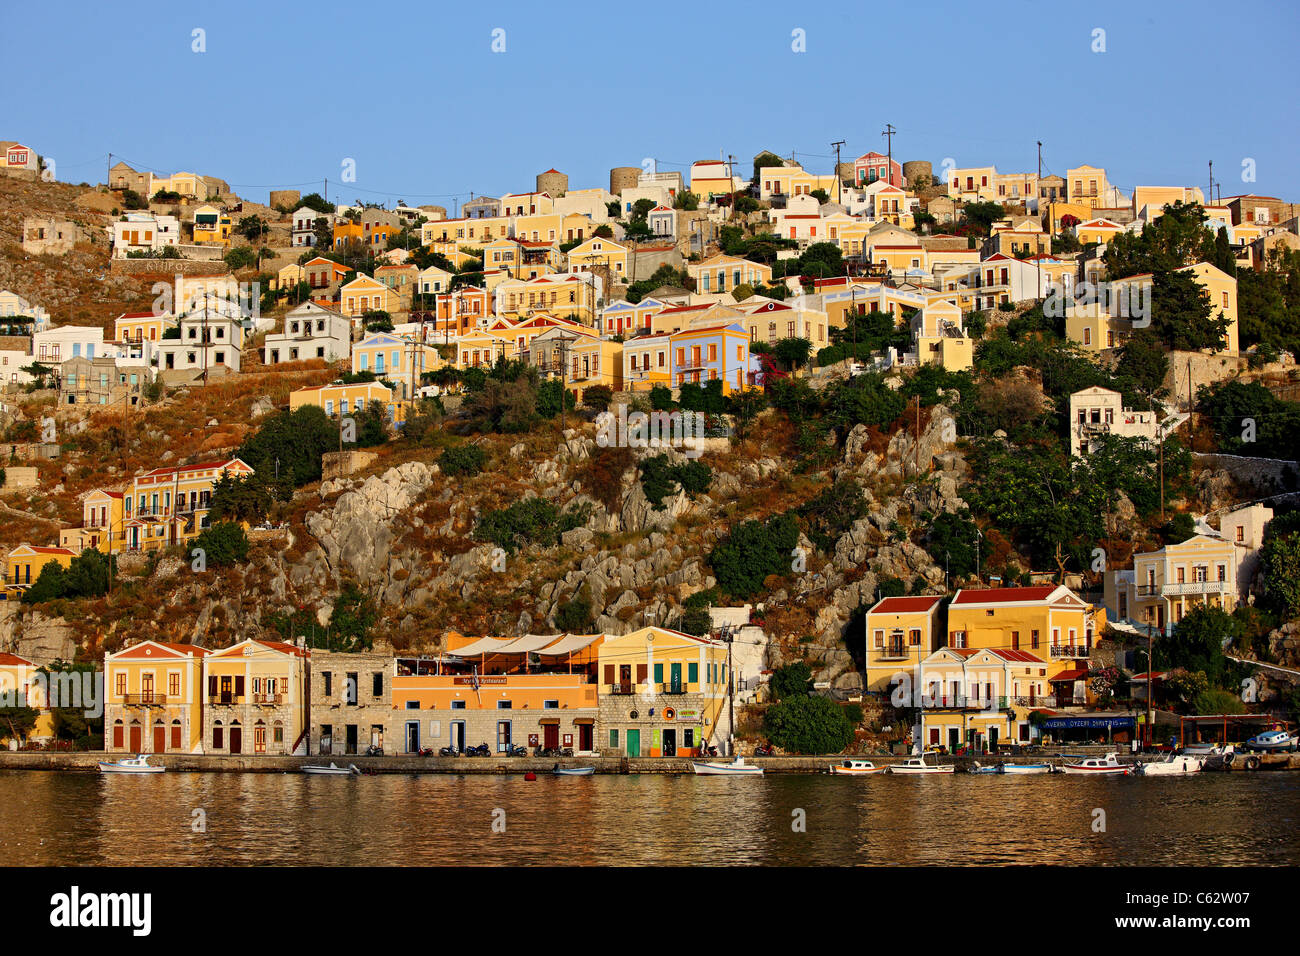 Greece, Symi island, Dodecanese. Partial  view of Gyalos, capital and main port of the island. - Stock Image